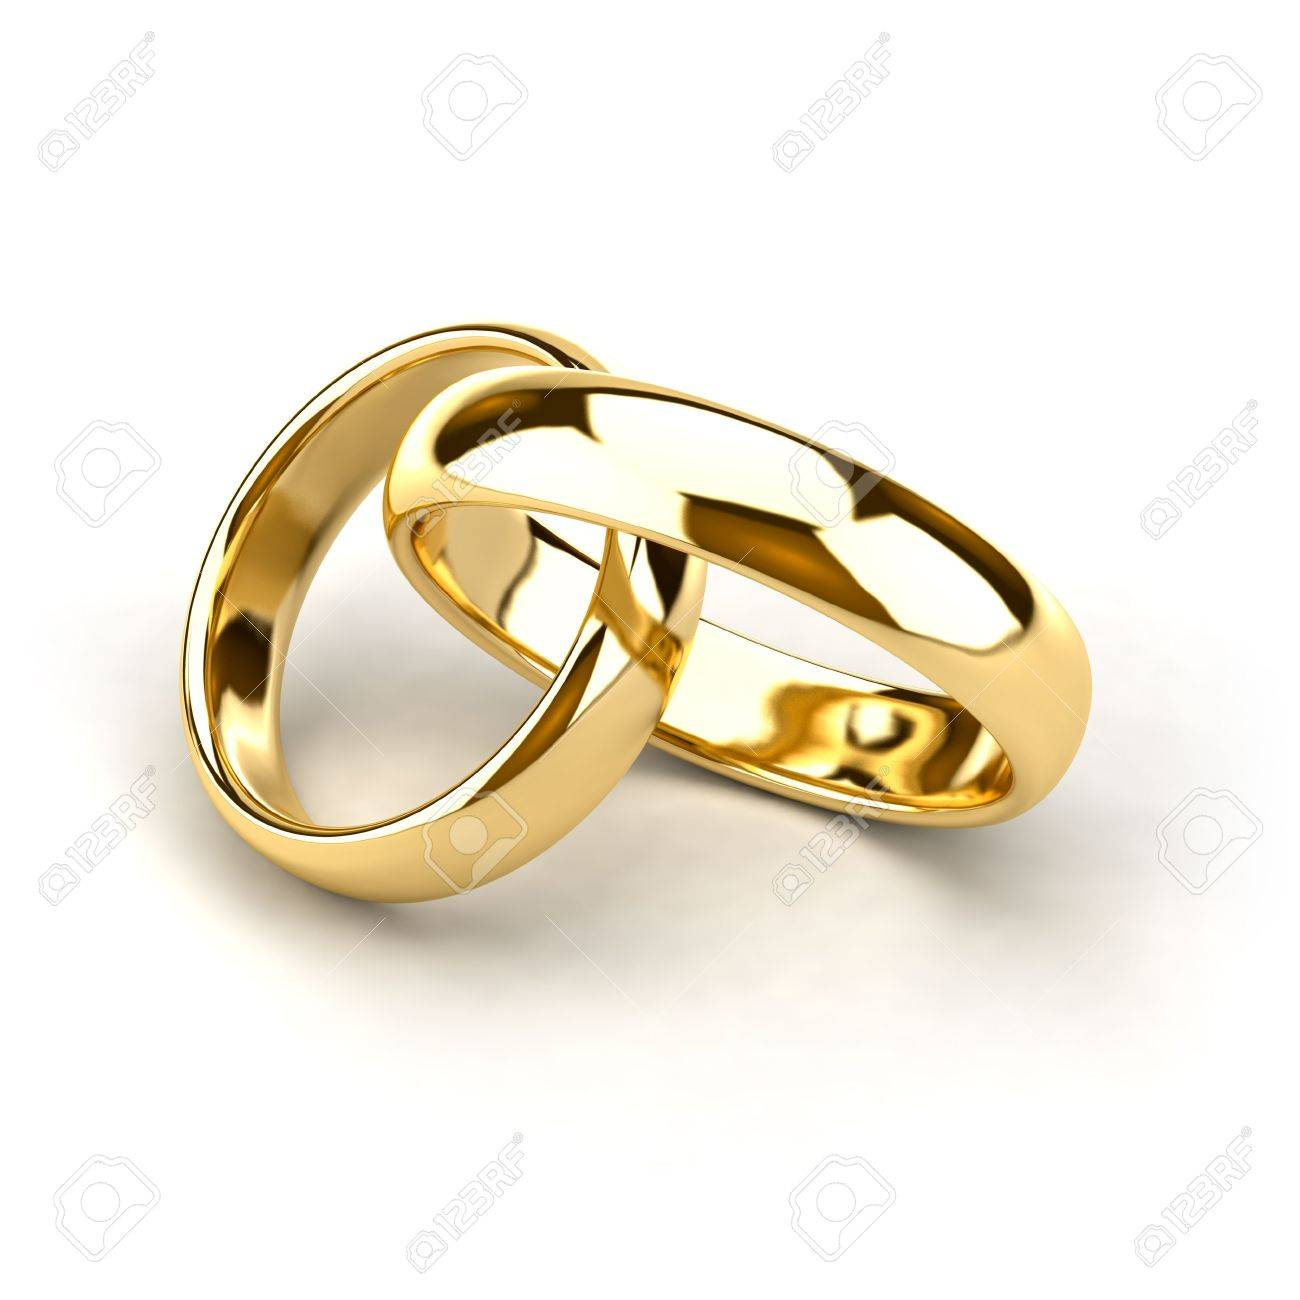 Two Wedding Rings Like Links In The Chain Are Interconnected Stock Photo